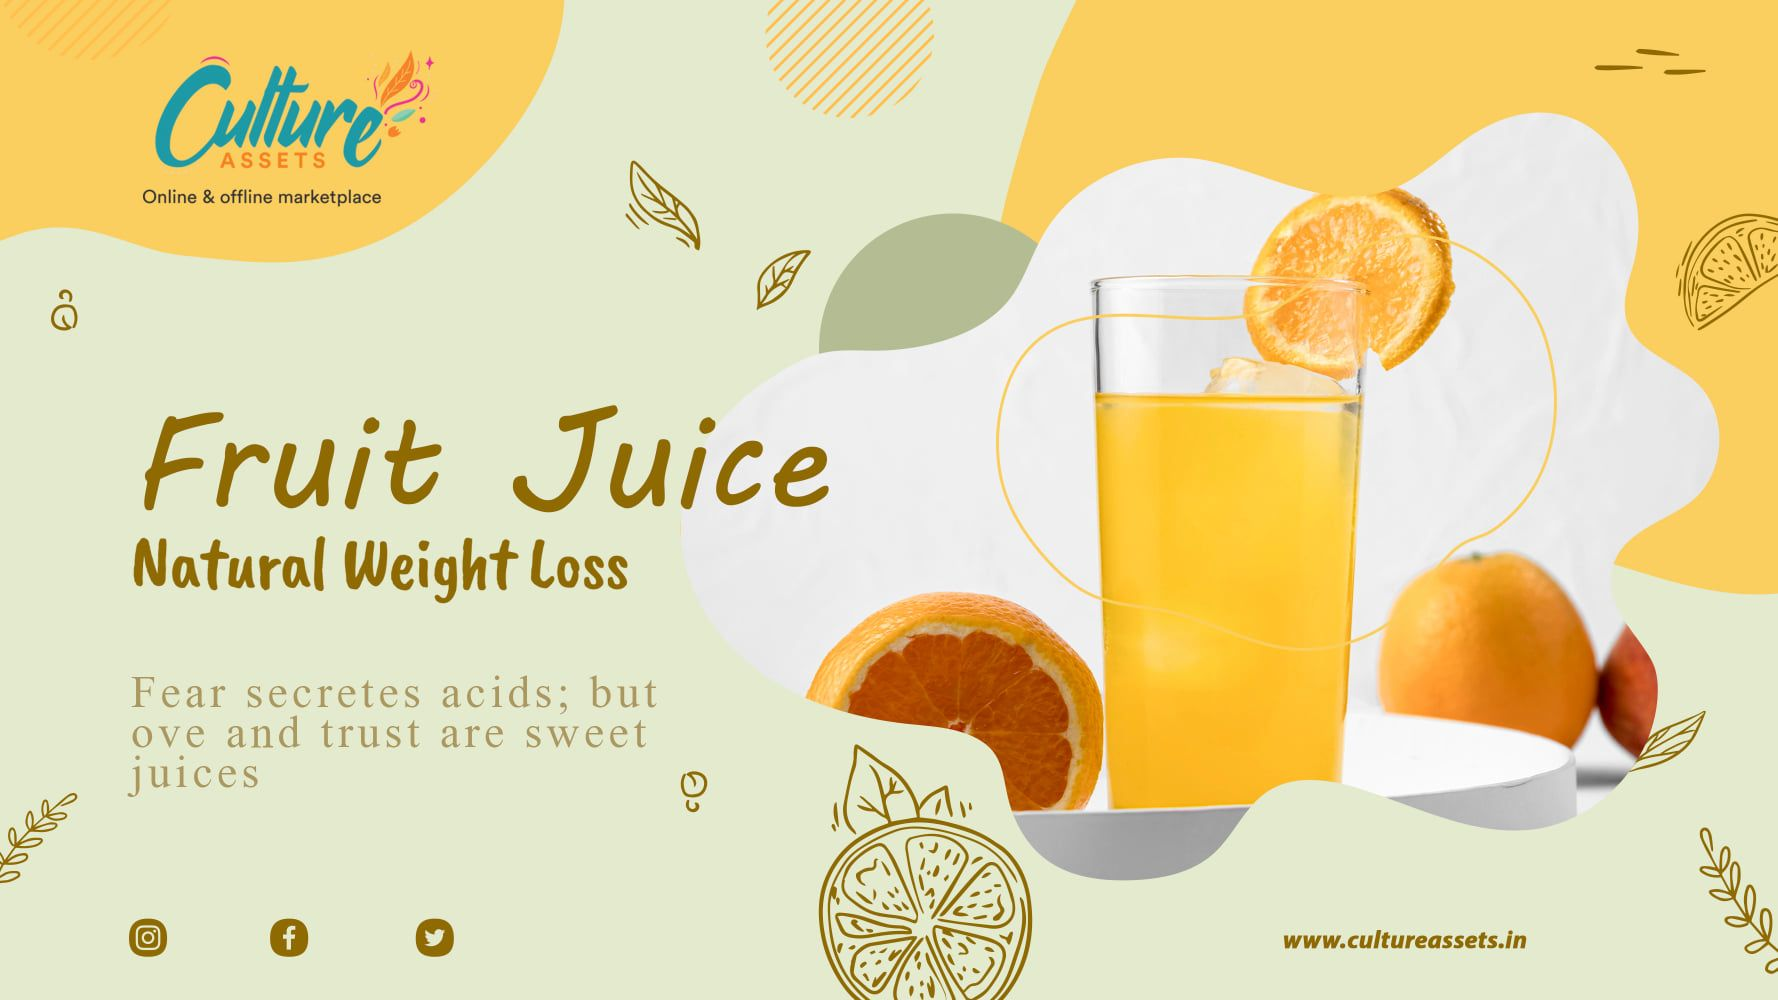 Buy juice online of best quality at Culture Assets. . . . . #juice #healthy #vape #healthylifestyle #food #vegan #healthyfood #juicewrld #detox #fruit #fresh #freshjuice #smoothie #juicing #health #love #organic #juicecleanse #fruits #foodie #drink #coldpressedjuice #coffee #plantbased #healthyjuice #vaping #orange #eliquid